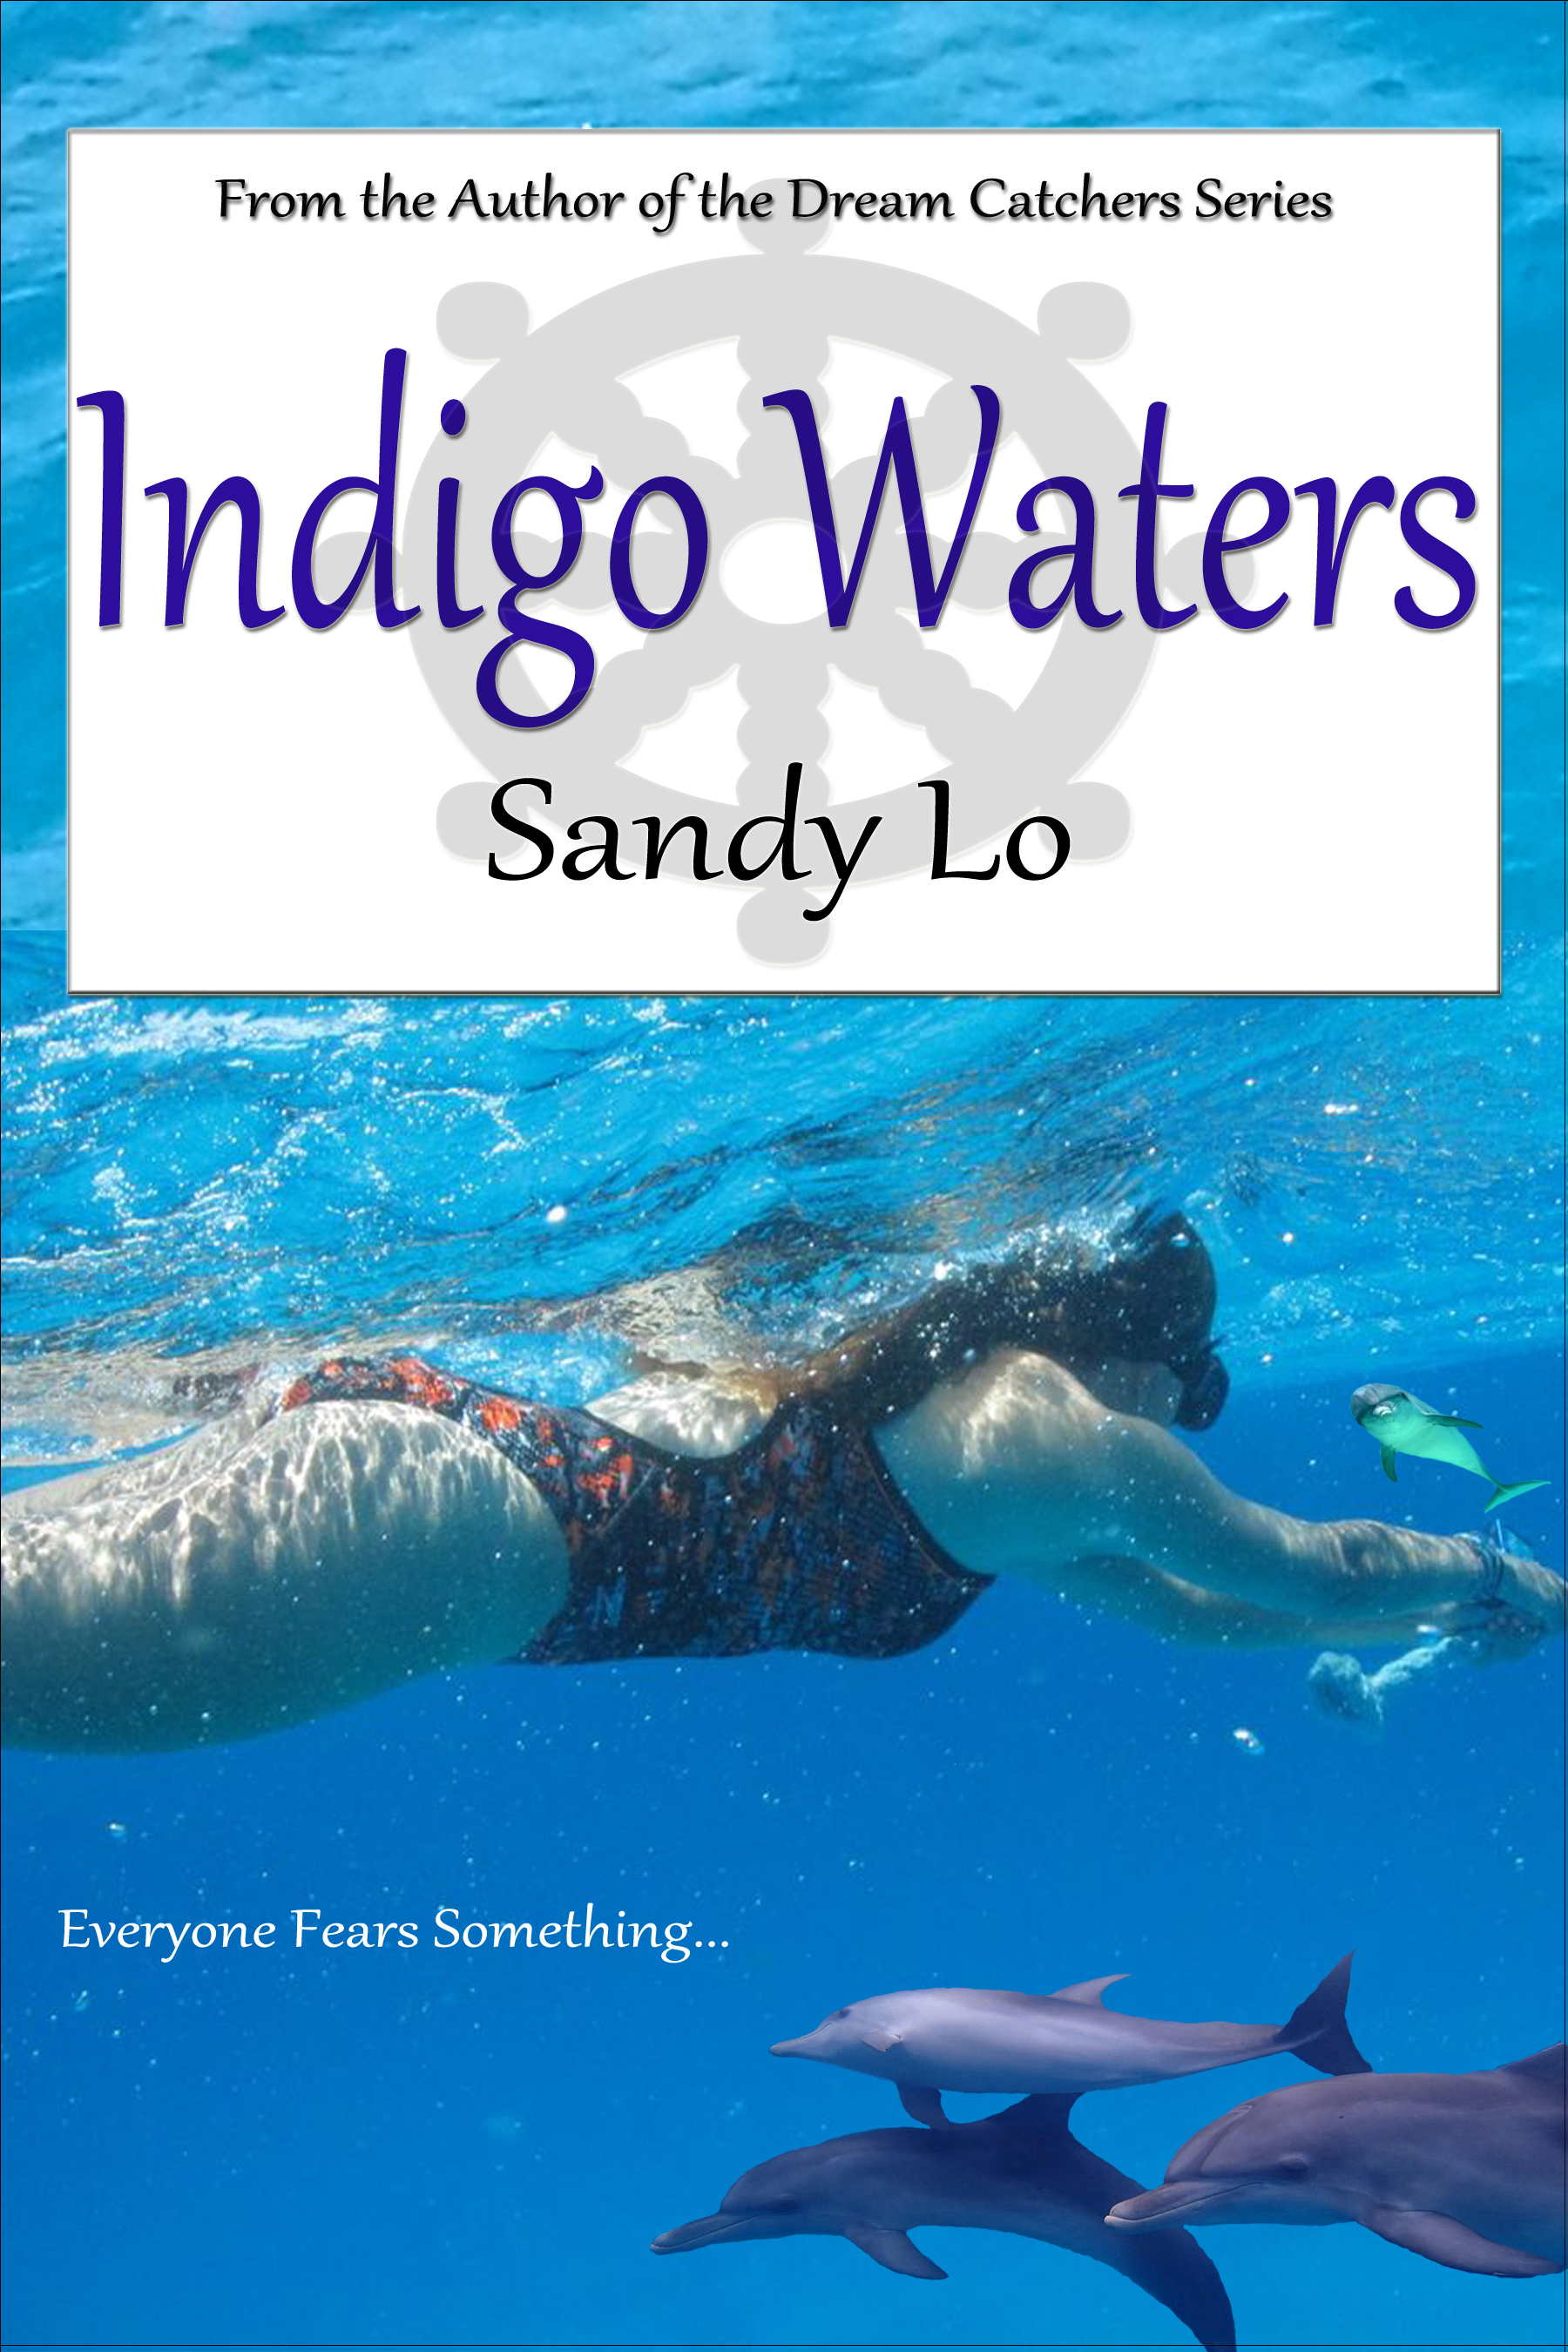 Indigo Waters by Sandy Lo